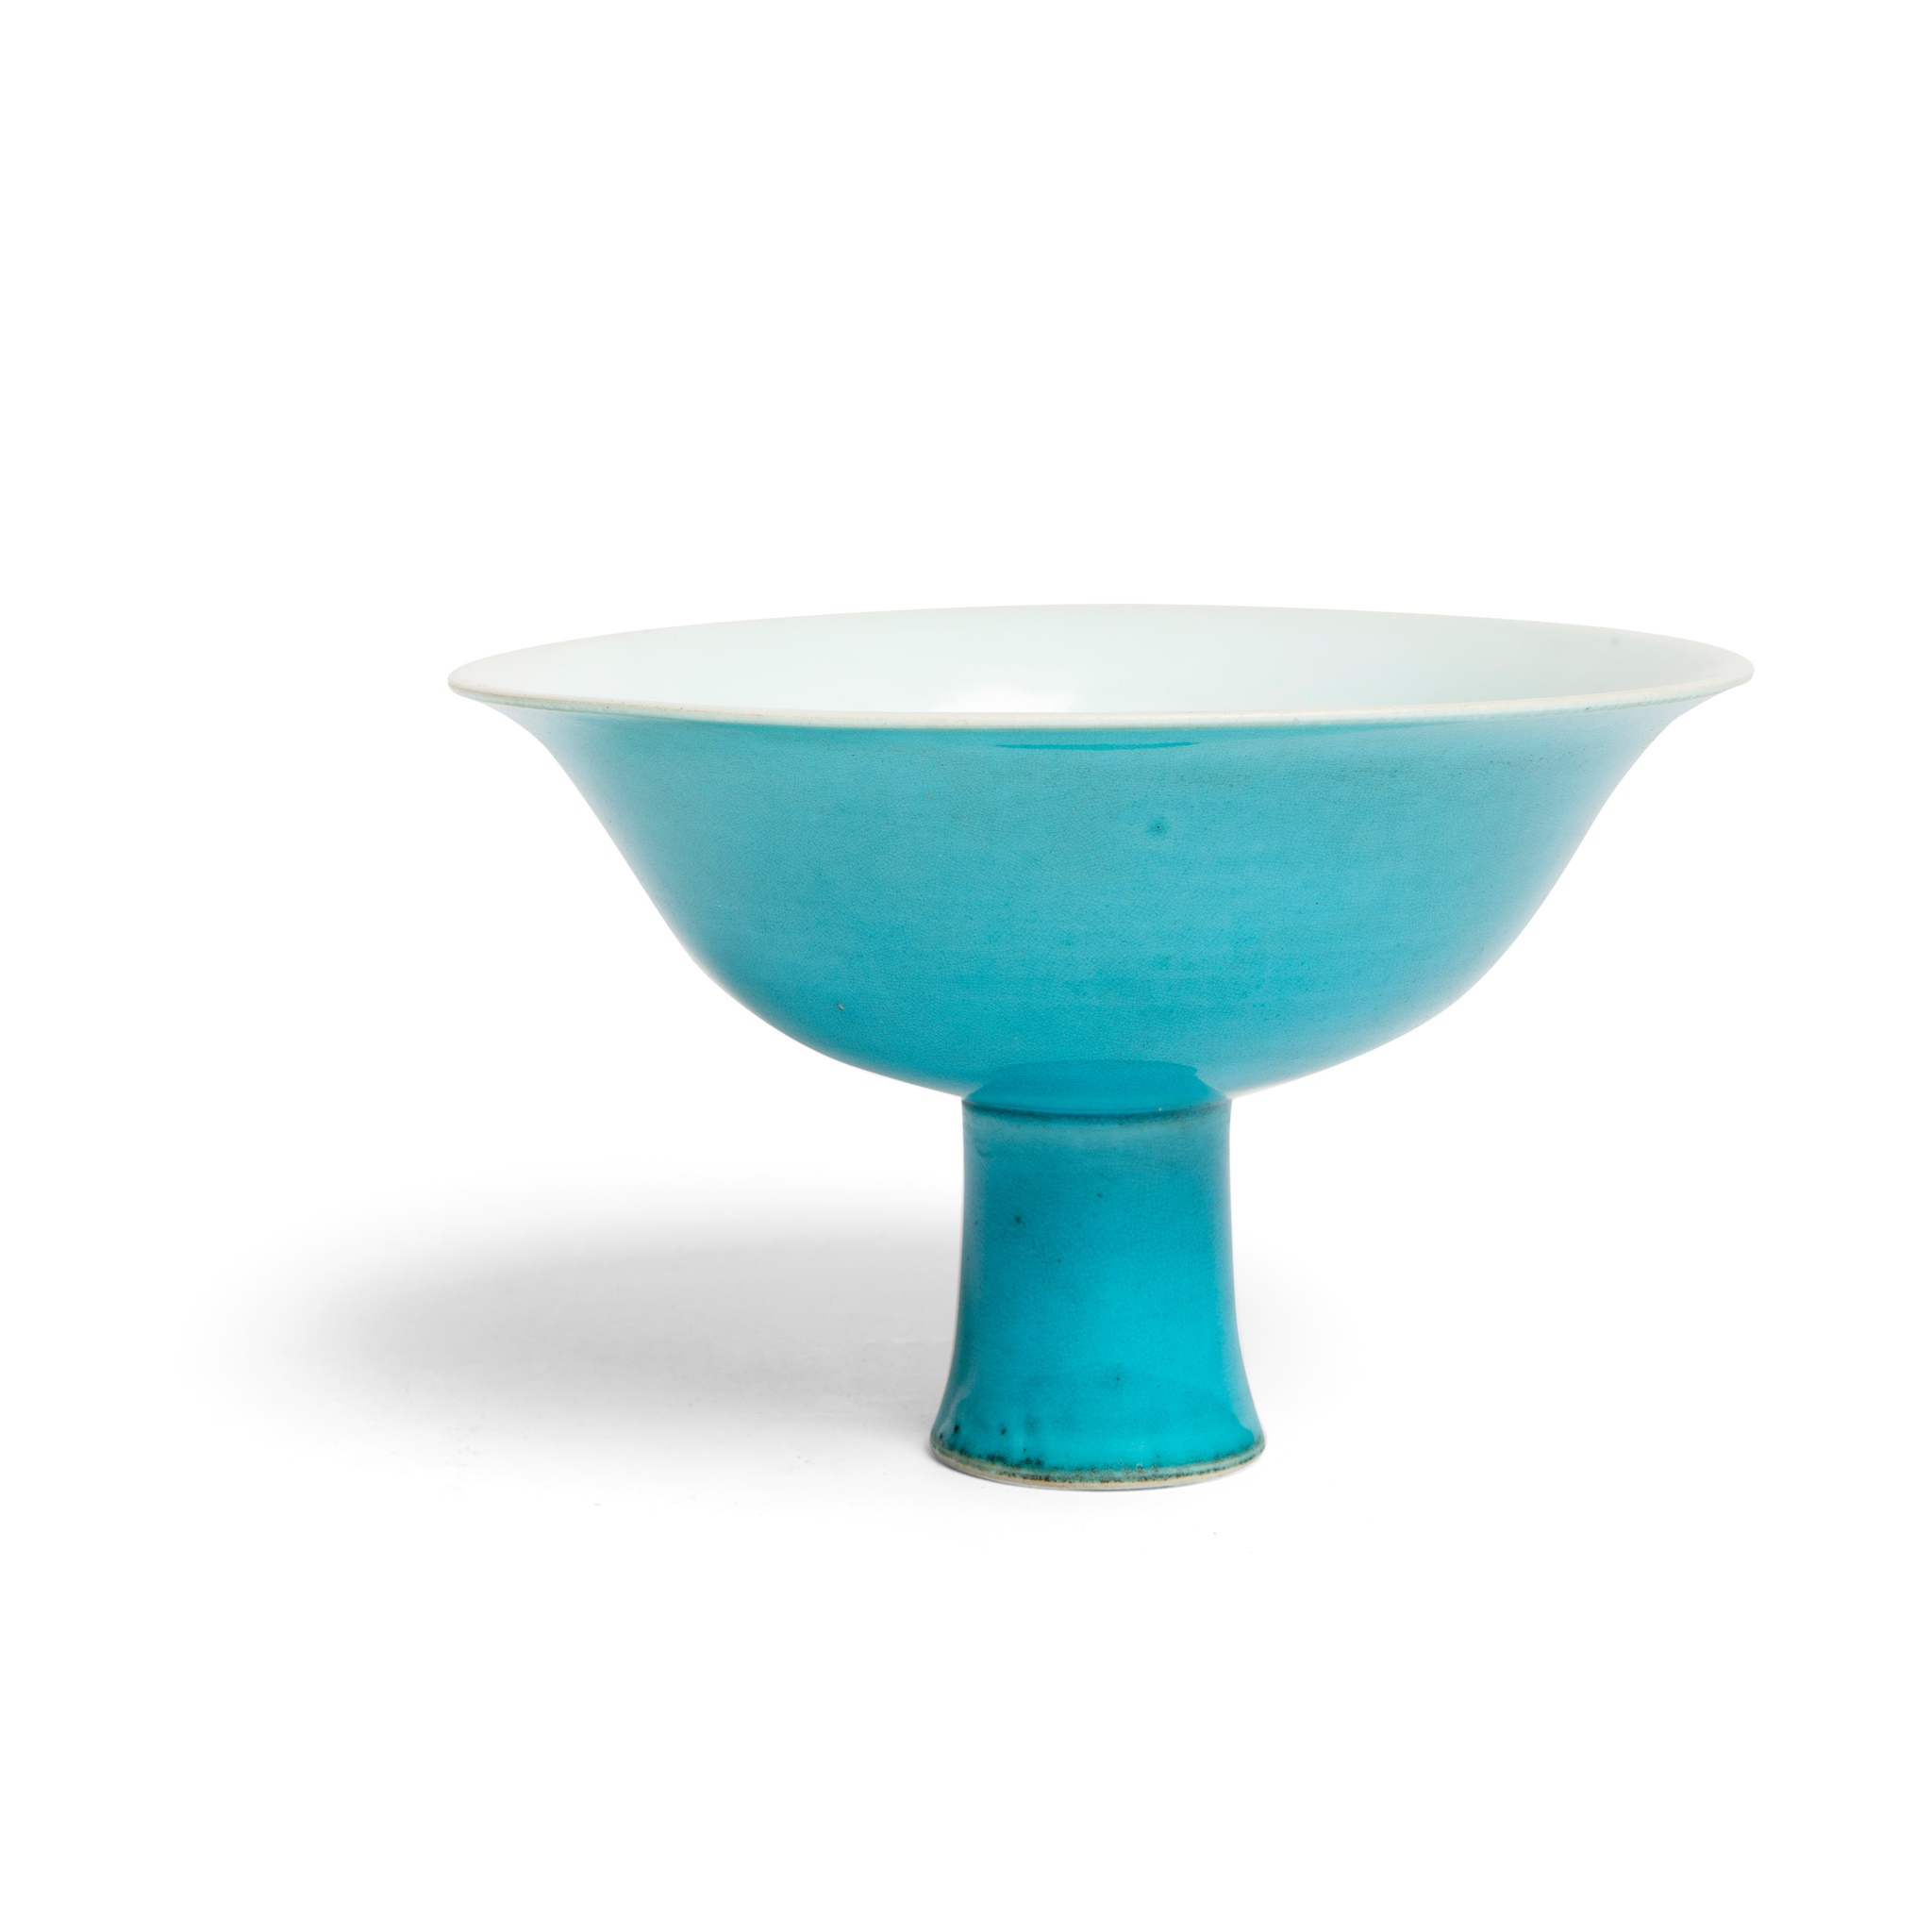 TURQUOISE-GLAZED 'DRAGON' STEM BOWL | YONGLE MARK BUT POSSIBLY QIANLONG PERIOD, Provenance: property of a gentleman; formerly in a private German collection, acquired from an antique shop in Munich between 1965 and 1980, 10cm high, 15.8cm diameter